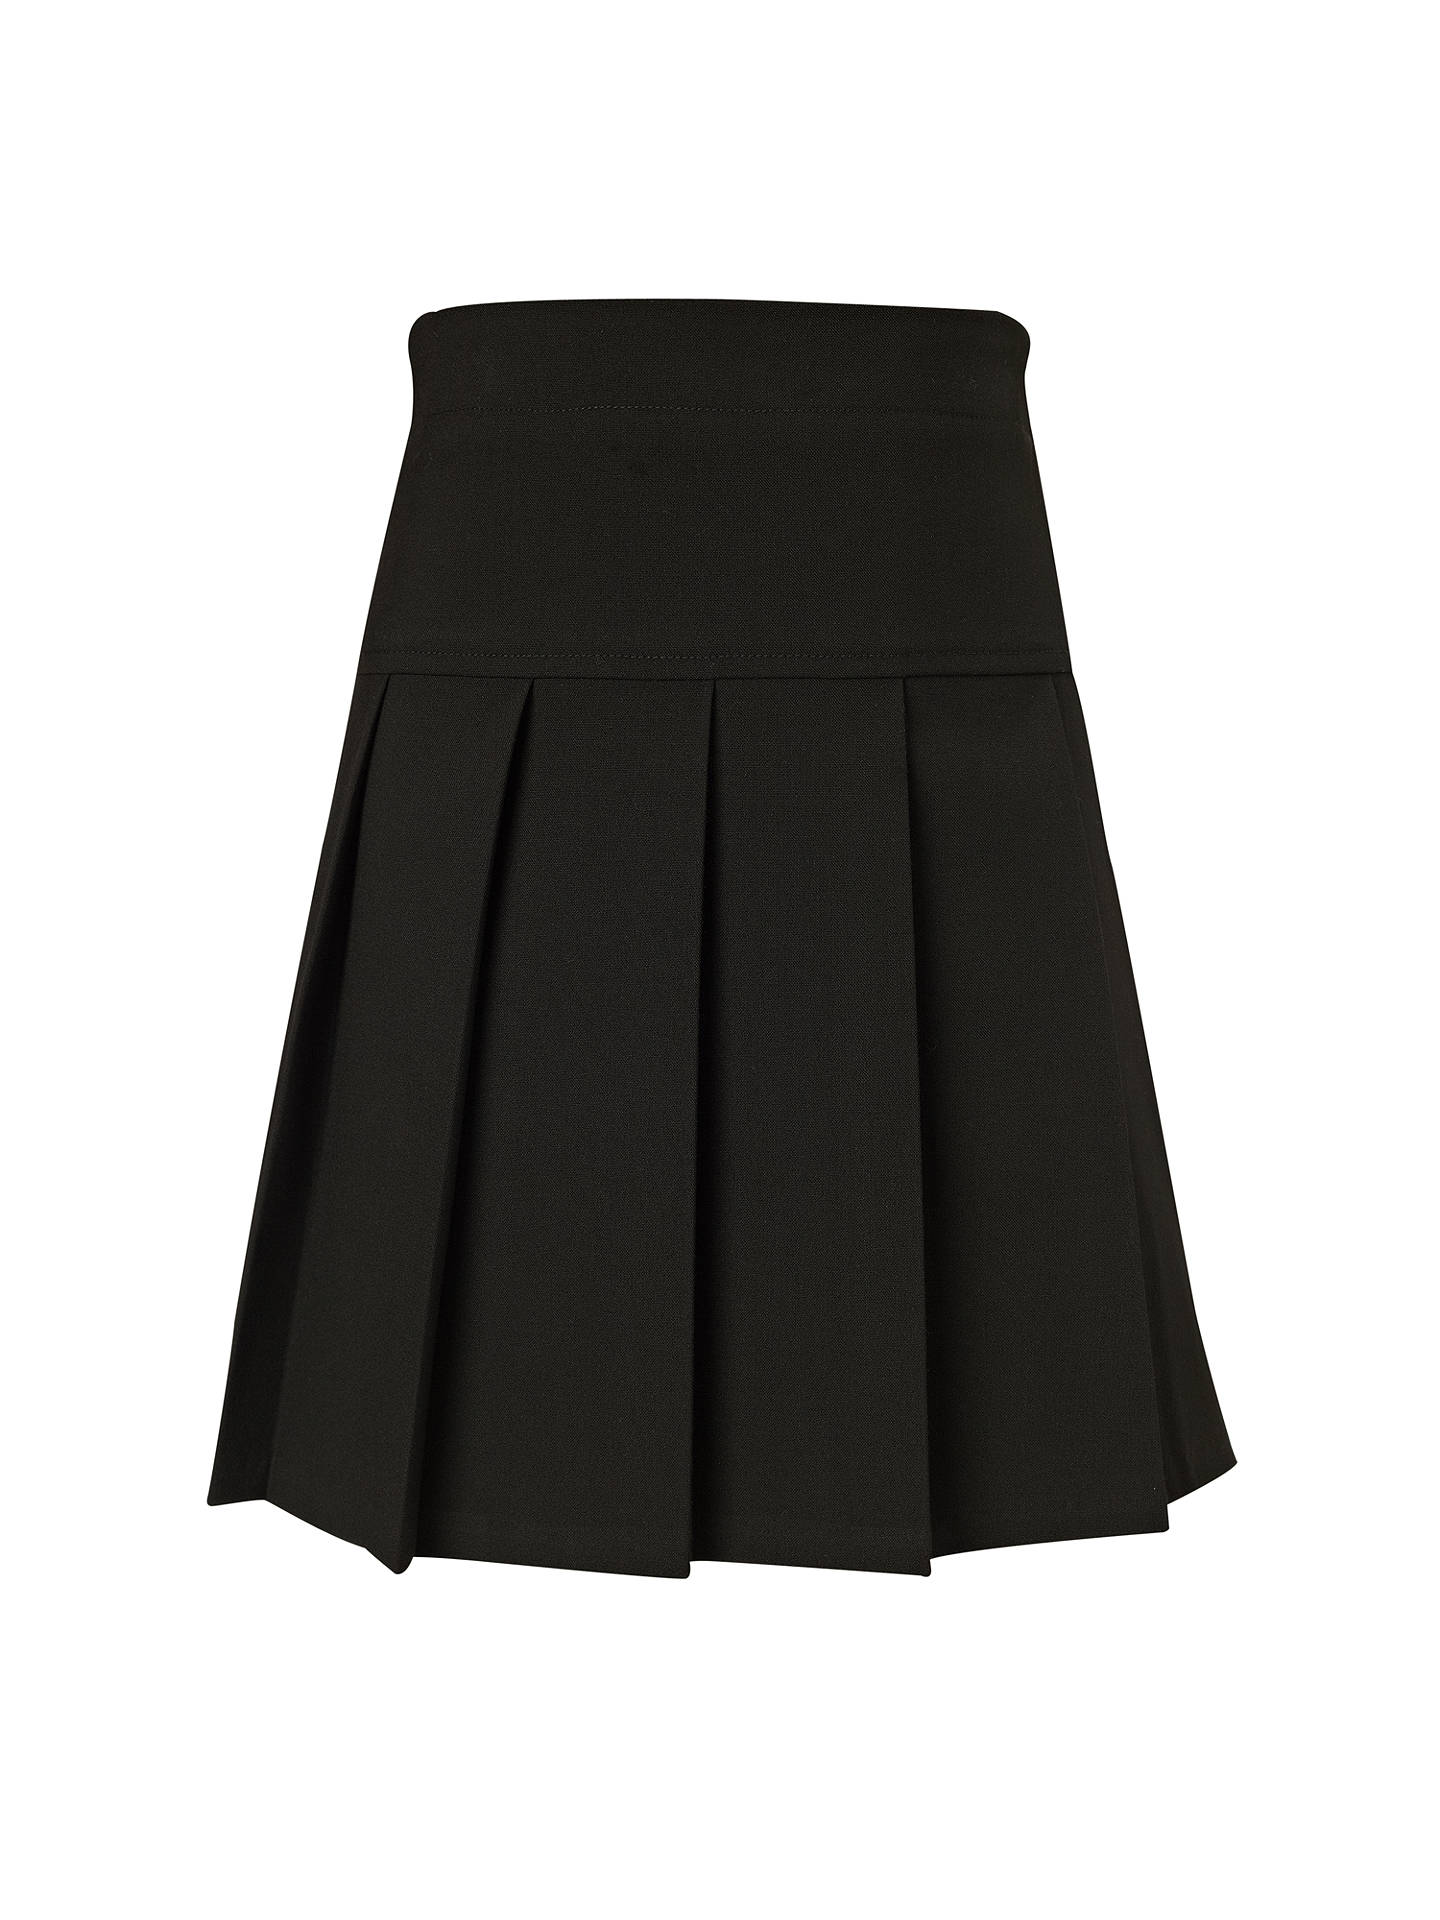 Buy John Lewis & Partners Girls' Panel Pleated School Skirt, Black, 5 years Online at johnlewis.com